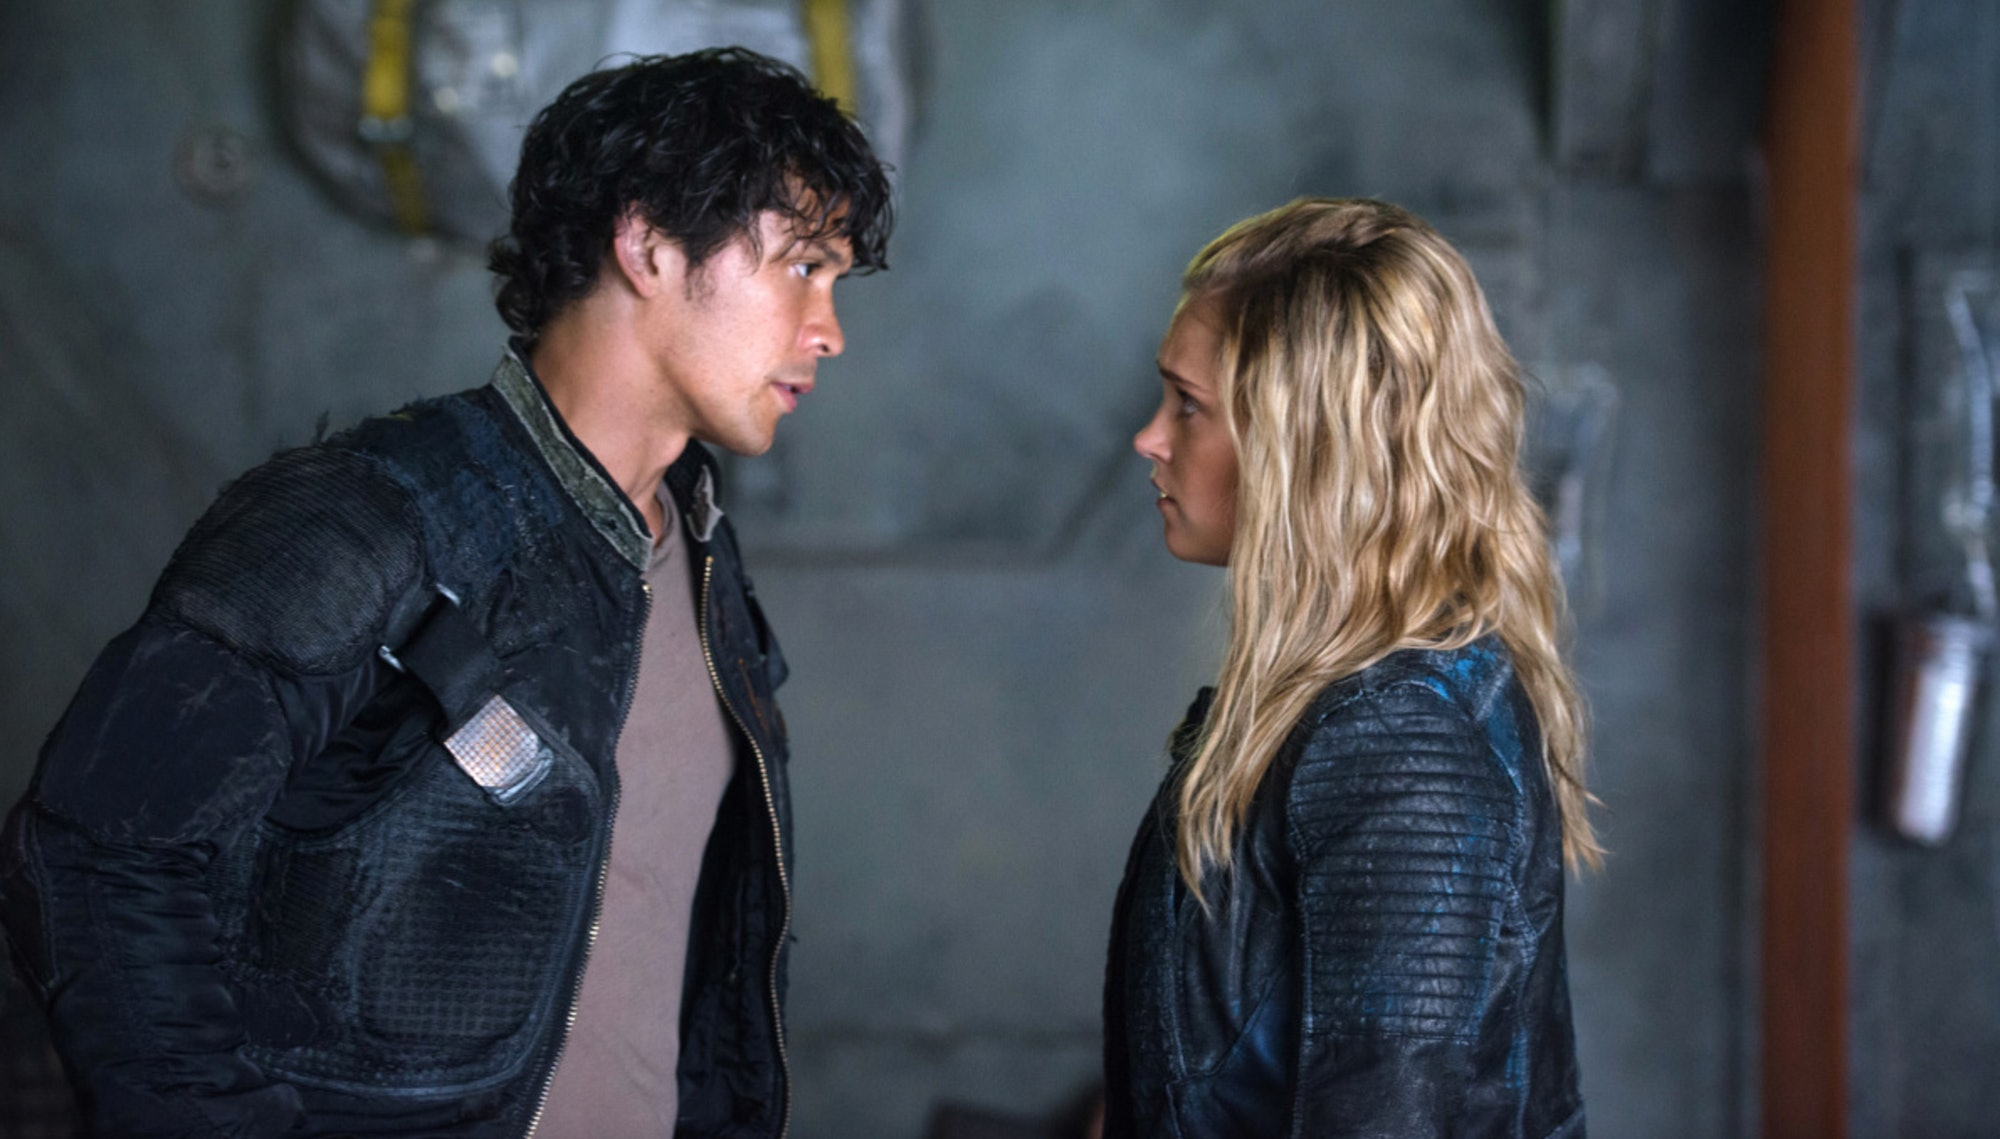 Bob Morley and Eliza Taylor in 'The 100'